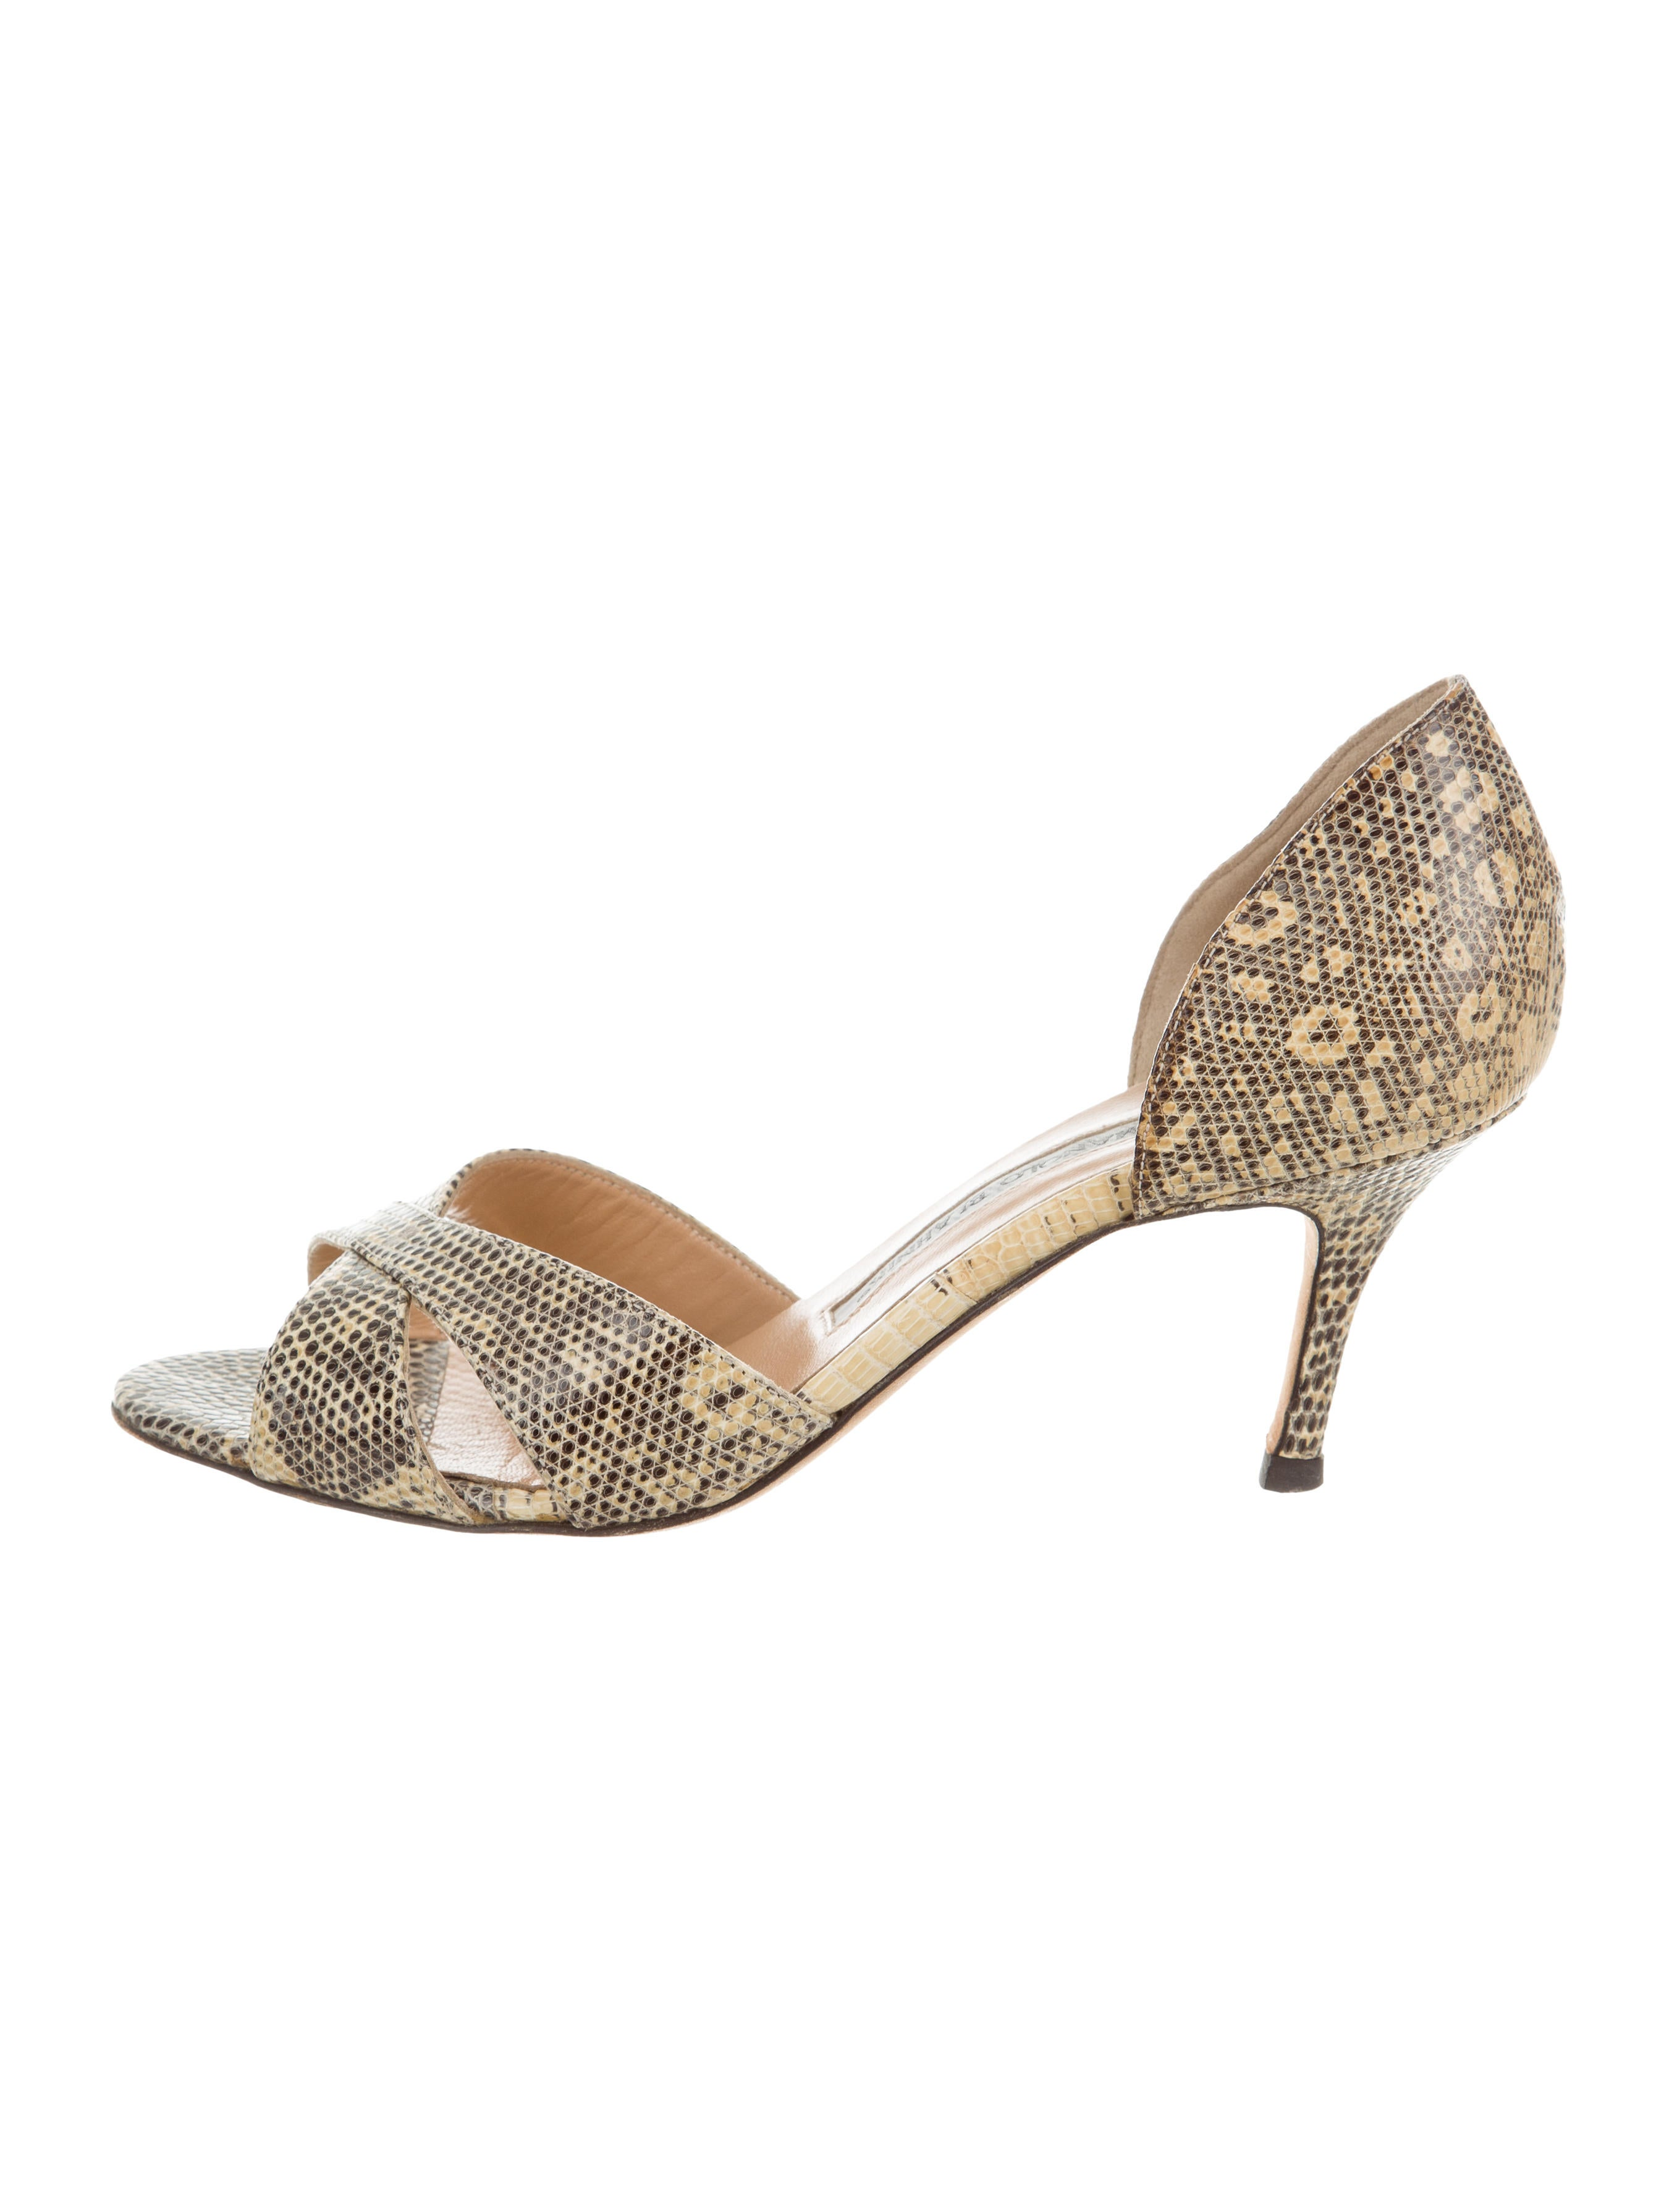 Manolo Blahnik Lizard d'Orsay Pumps outlet for nice 6n4Yxz